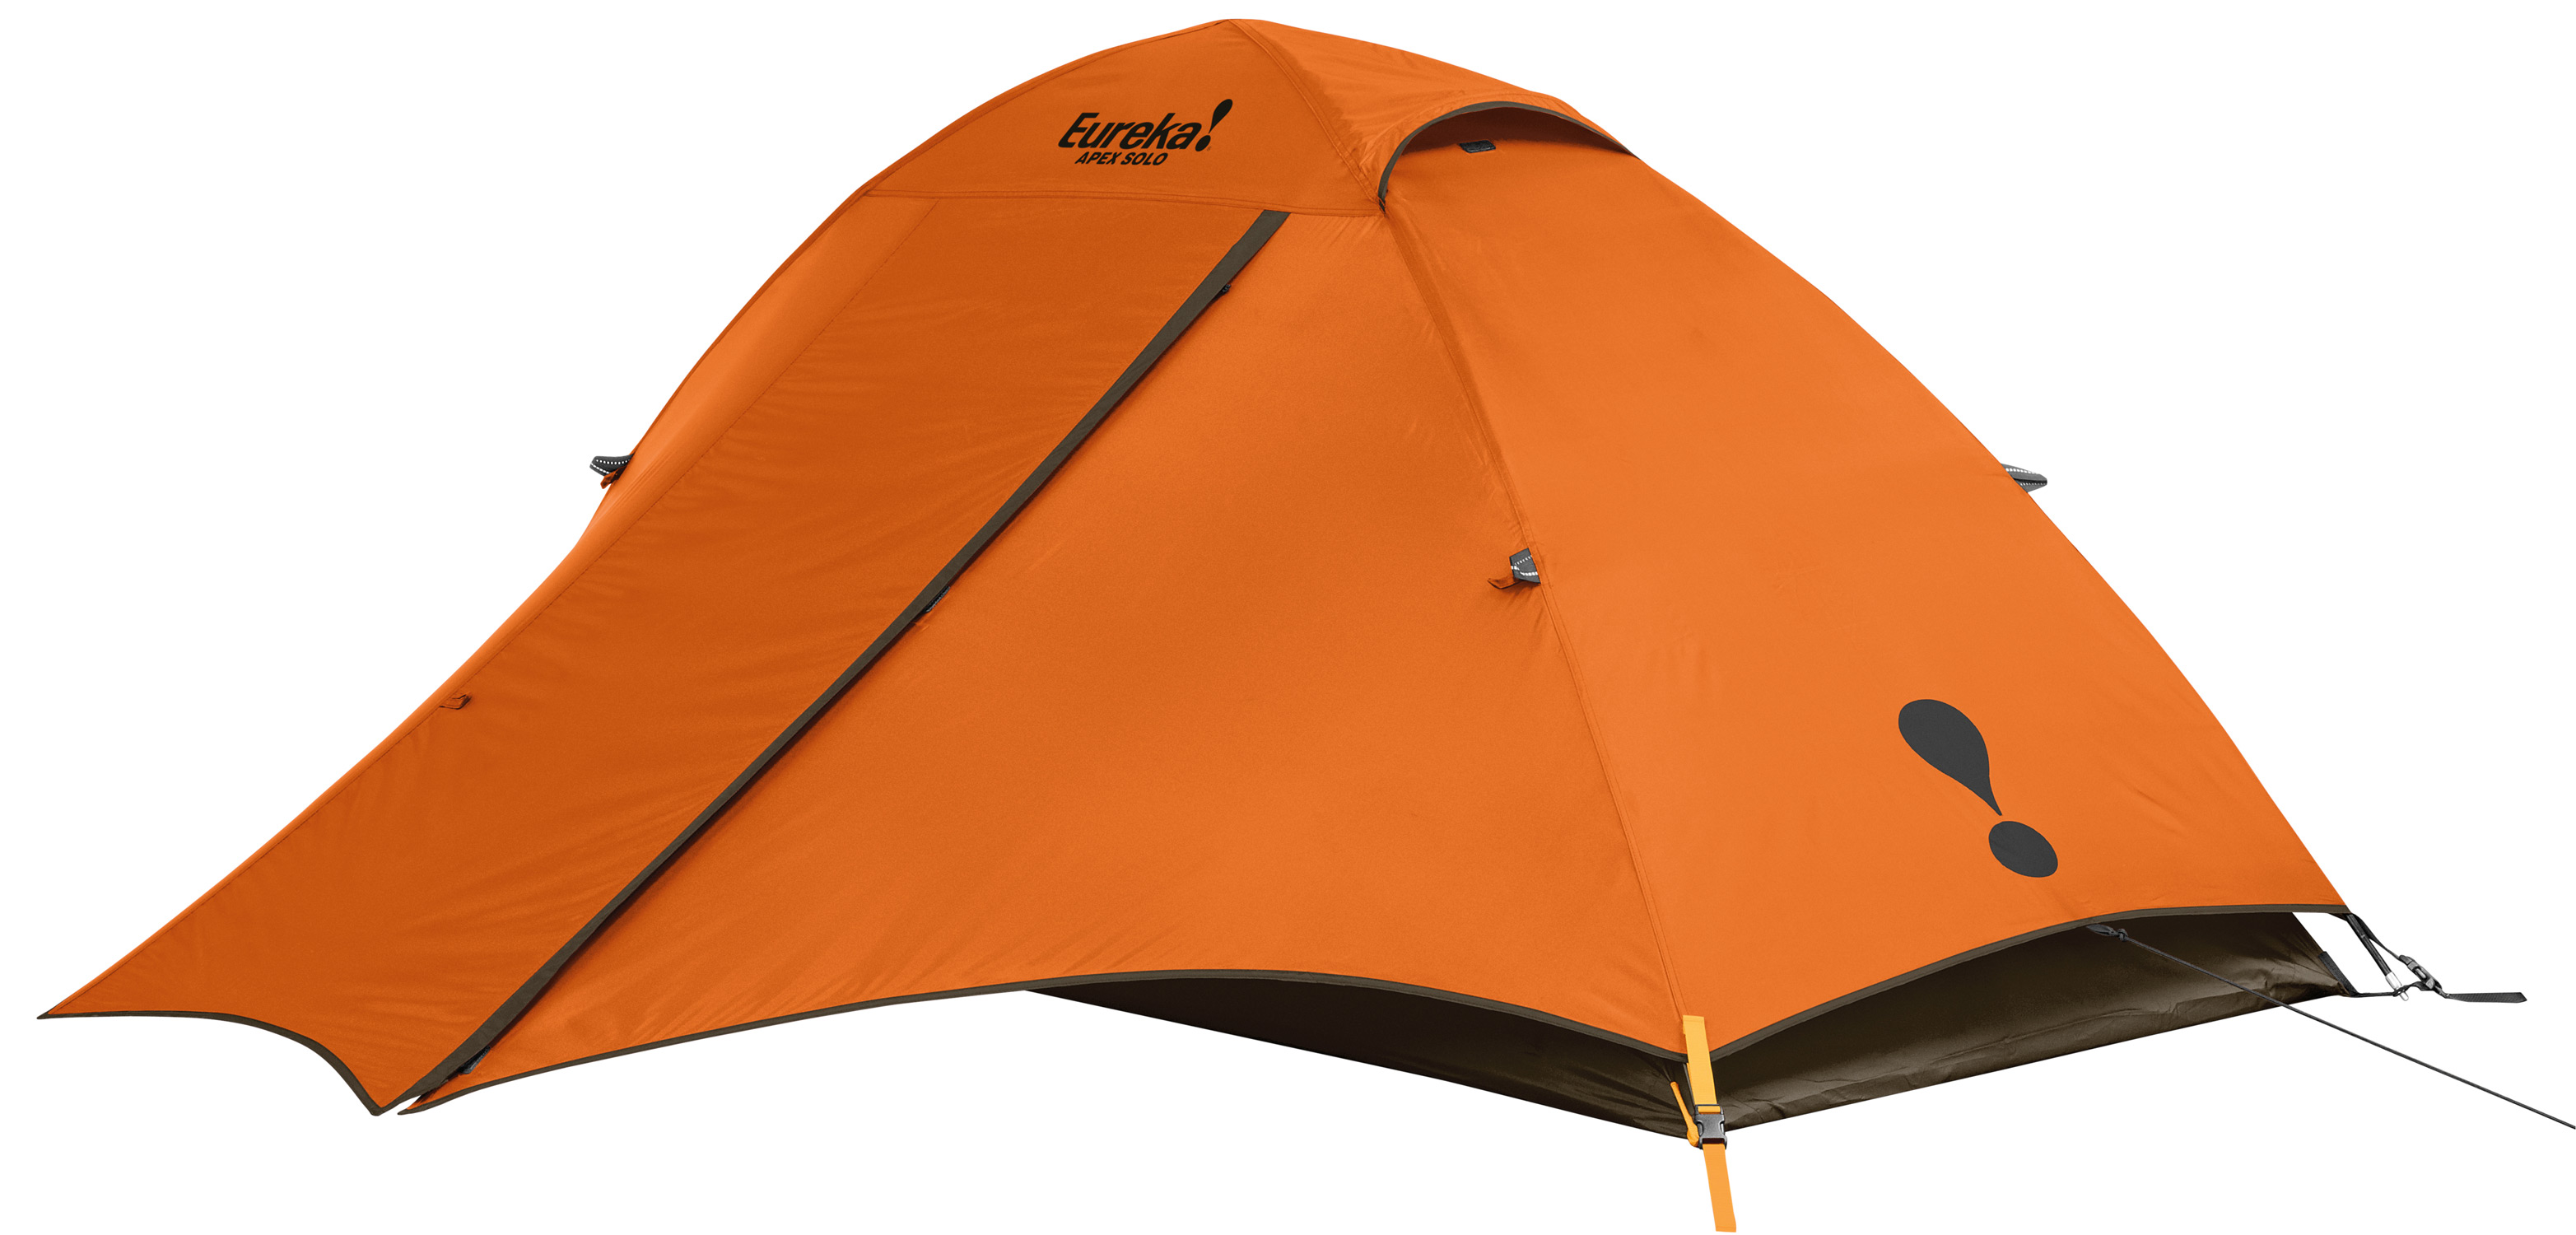 "Camp and Hike This versatile, fiberglass 2 pole dome tent is ideal for those less demanding adventures.Key Features of the Eureka Apex Solo 1 Person Tent: The full coverage fly with a full front vestibule provides ready access weatherproof storage. The tent's free standing and shockcorded frame with post & grommet assembly is sturdy and easy to set up. Two interior pockets & a gear loft keep essentials close at hand. The side opening door tucks into its own pocket for easy access. Bathtub floor wraps up sides of tent, protecting against splashing and standing water. Sleeps 1 Floor Size 7' 6"" x 2' 8"" Pack Size 5"" x 16"" Min Weight 4 lbs 3 oz Seasons 3 Tent Area 20 sq ft Center Height 3' Frame 8.5 mm fiberglass, post & grommet Vents 1 in fly Doors 1 Windows N/A Vestibules 1 Vestibule Area 14.8 sq ft Gear Loft 1 Included Gear Loft Loops 2 Flashlight Loop 1 Storage Pockets 2 Wall 75D 190T polyester taffeta, uncoated Fly 75D 190T polyester taffeta, 800 mm coated Floor 75D 190T polyester taffeta, 800 mm coated Mesh 40D no-see-um - $71.95"